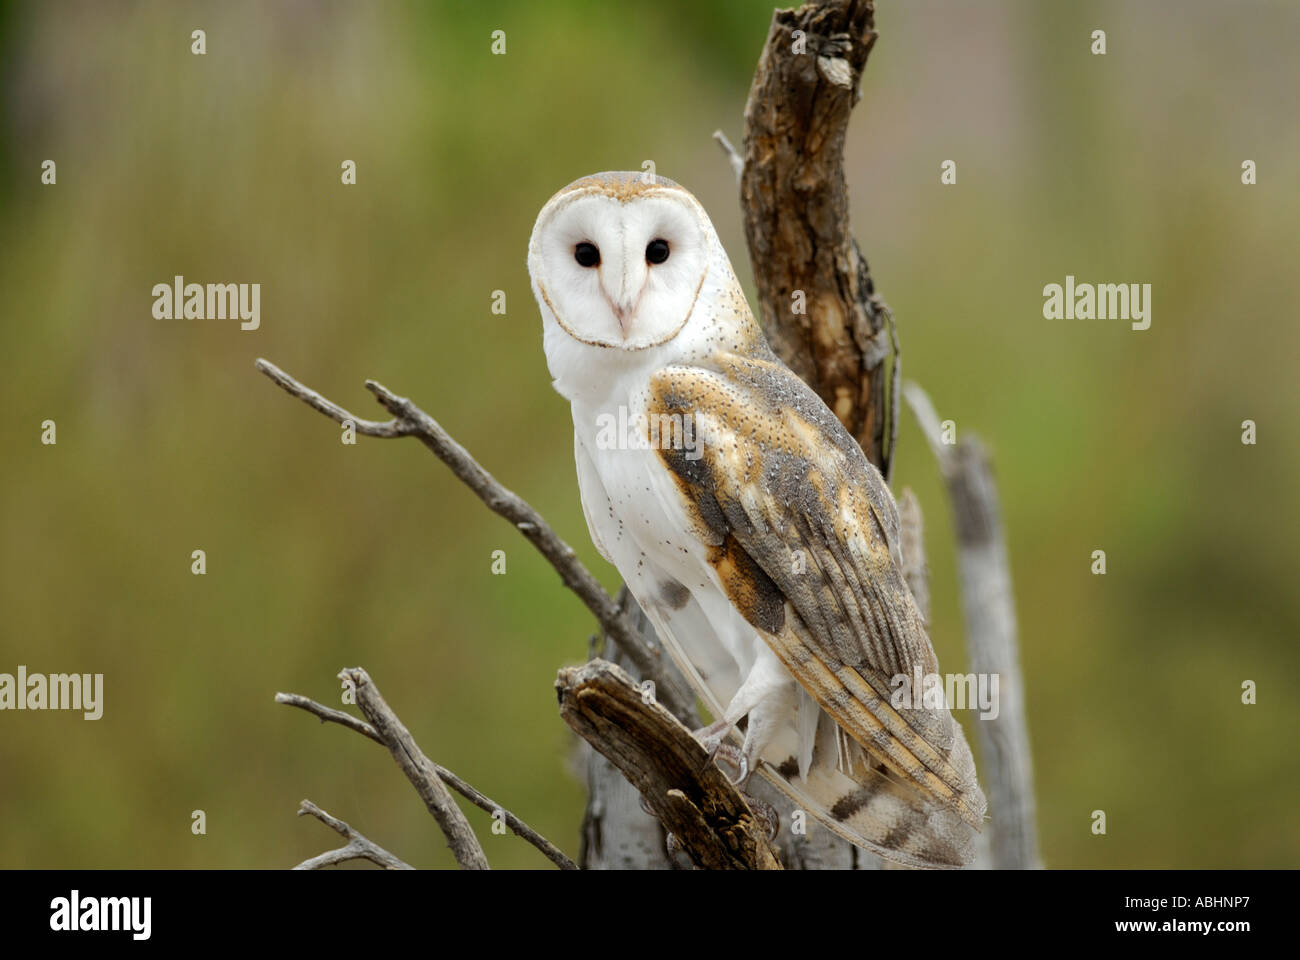 Barn owl, Tyto alba, close-up, perched on  branch, looking at camera - Stock Image